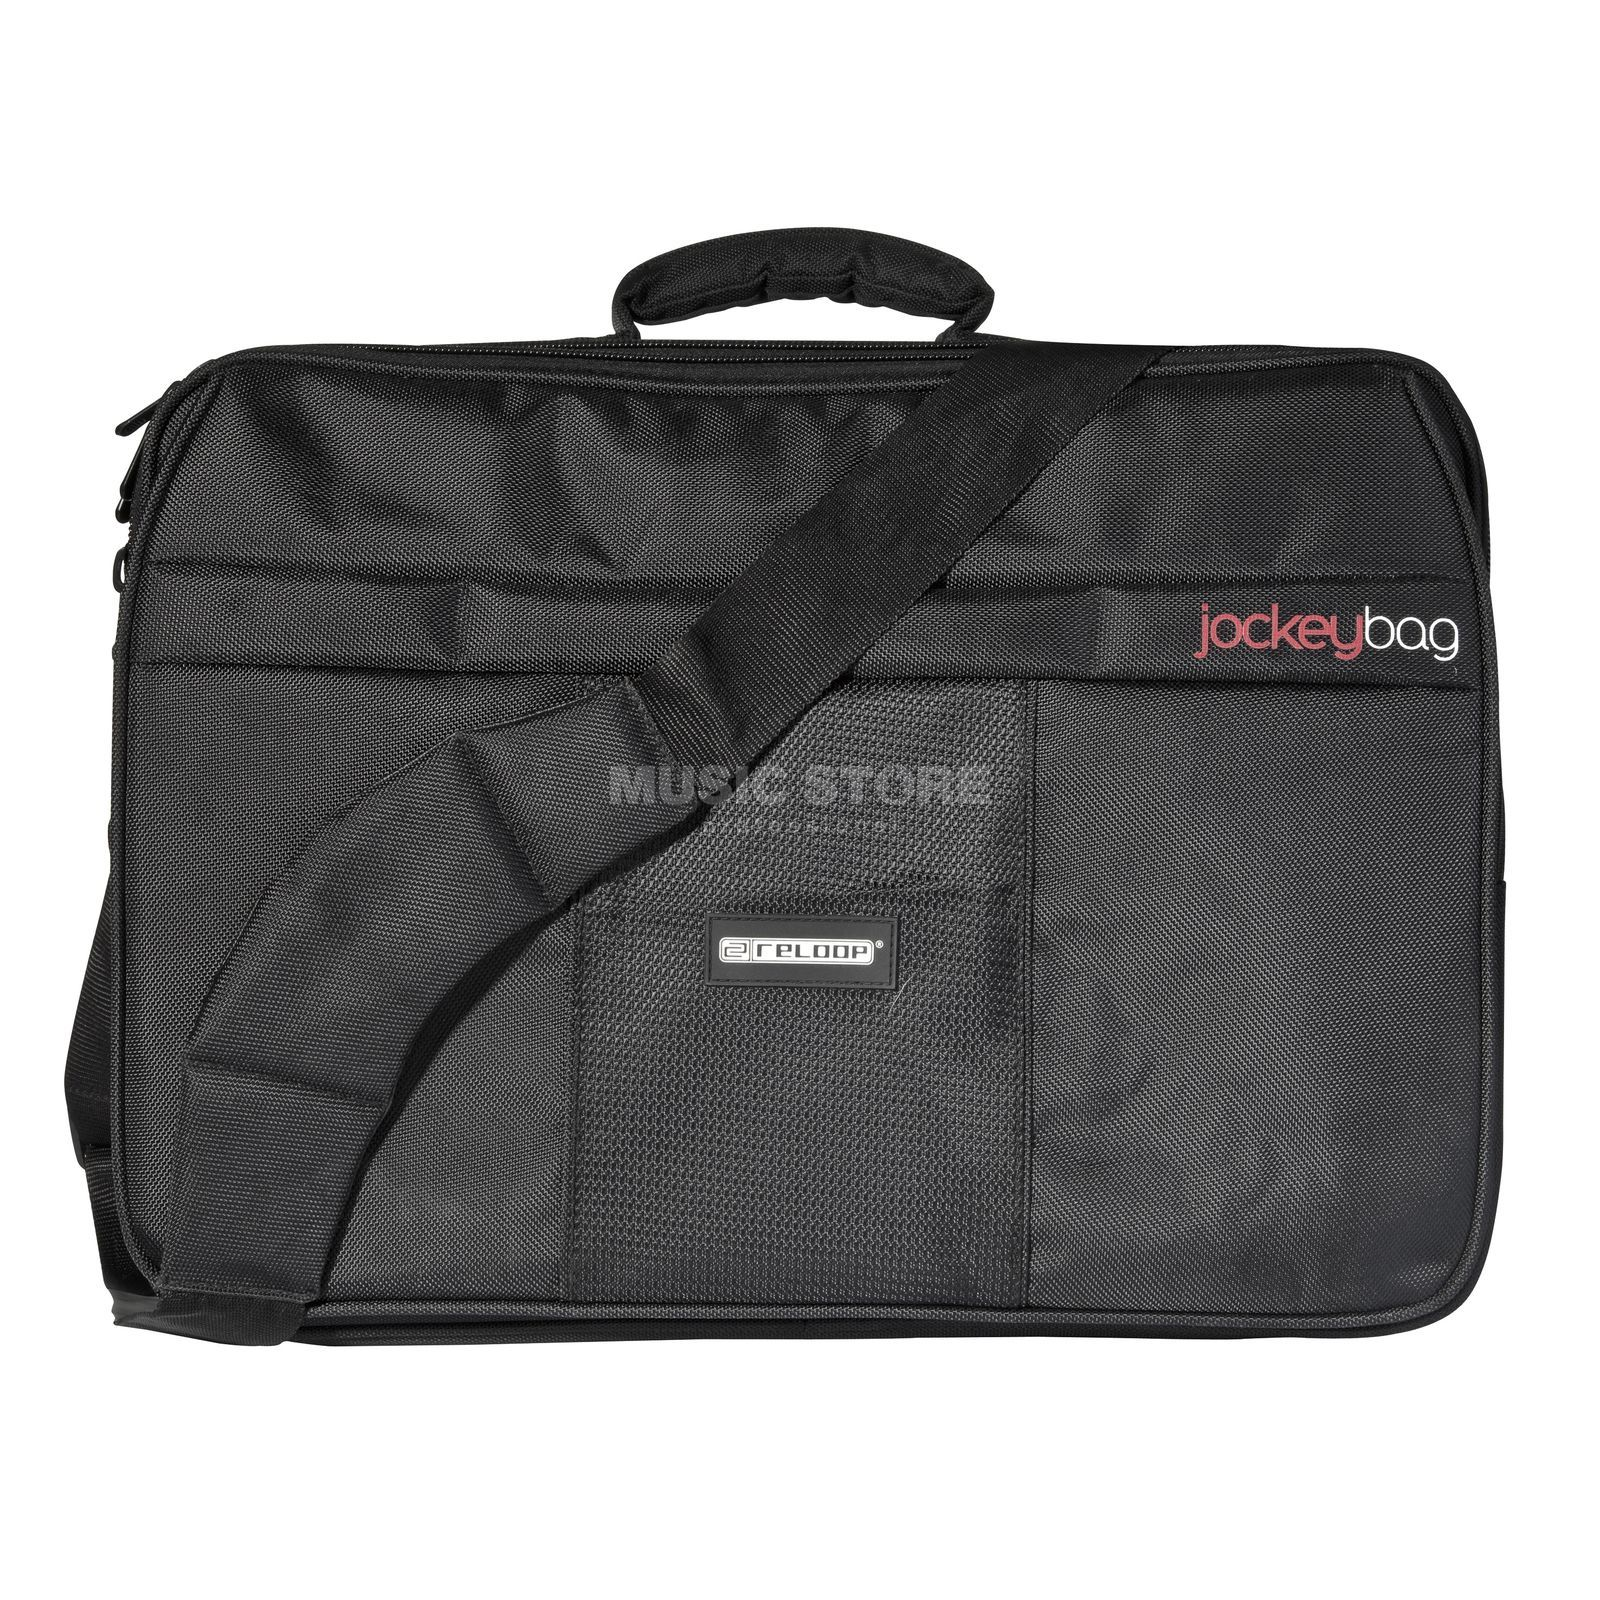 Reloop Jockey Bag 2 black  Product Image